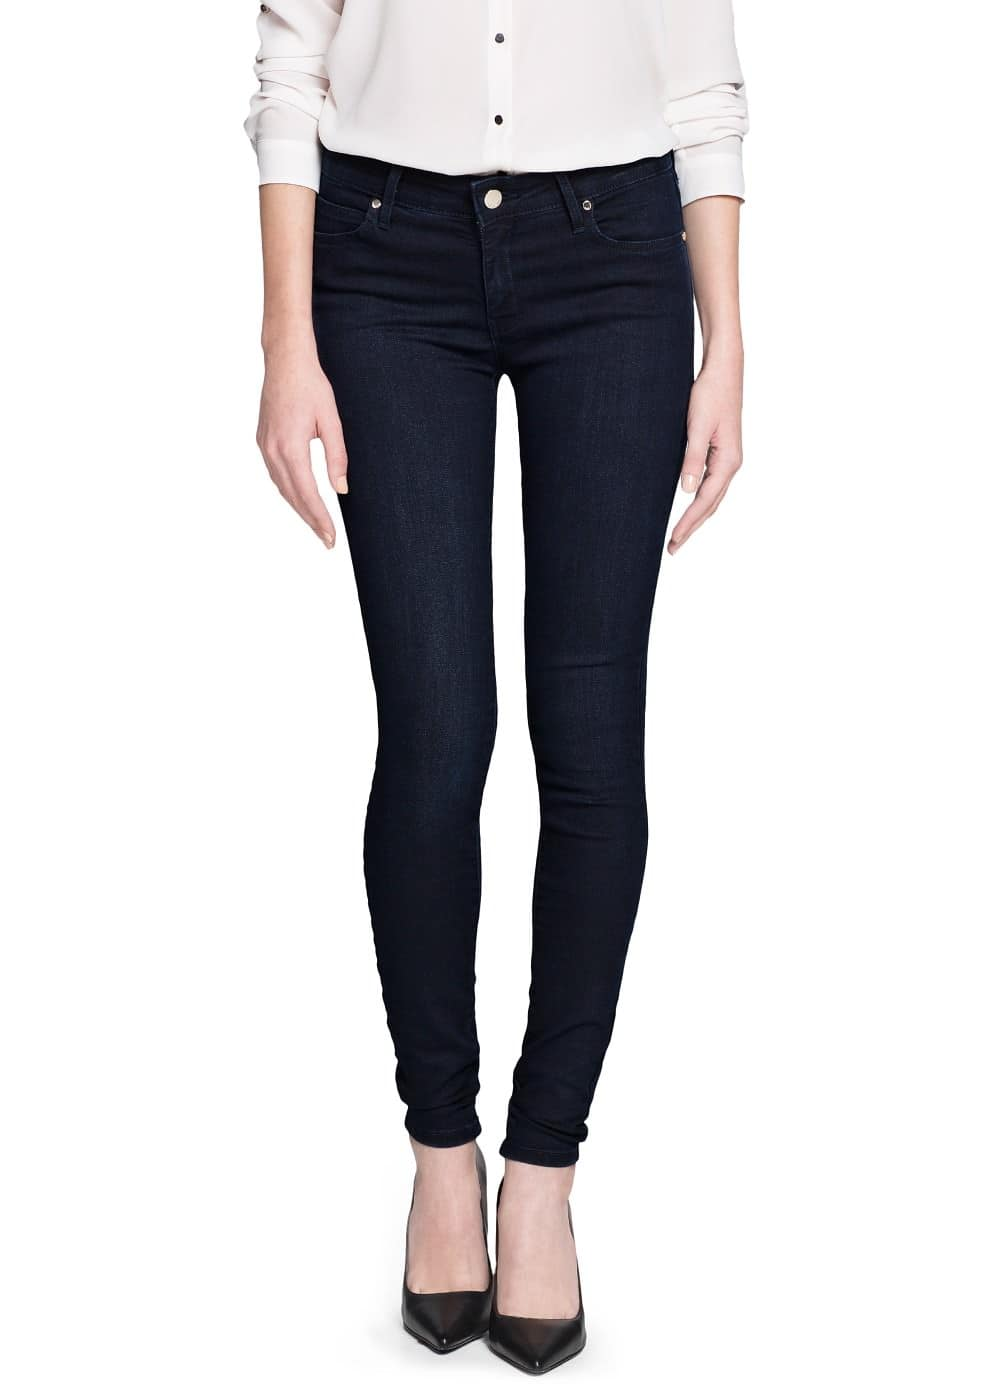 Mango skinny jeans review